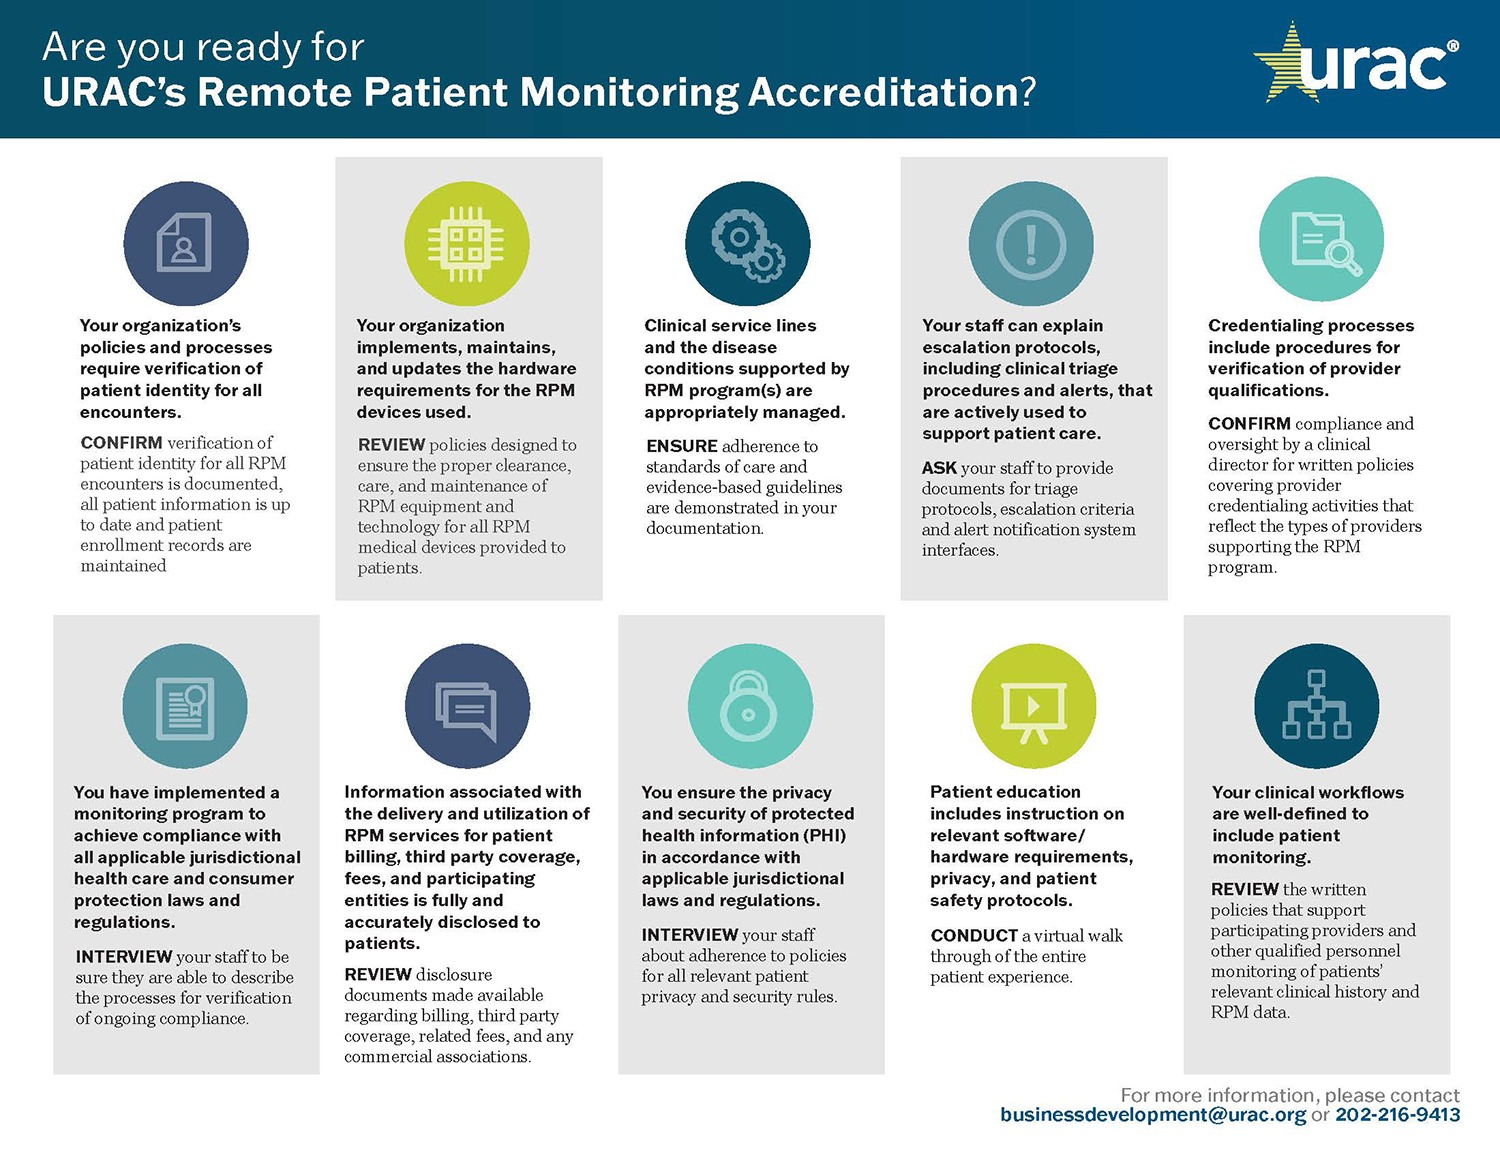 Are you ready for URAC's Remote Patient Monitoring Accreditation? Click to Download.